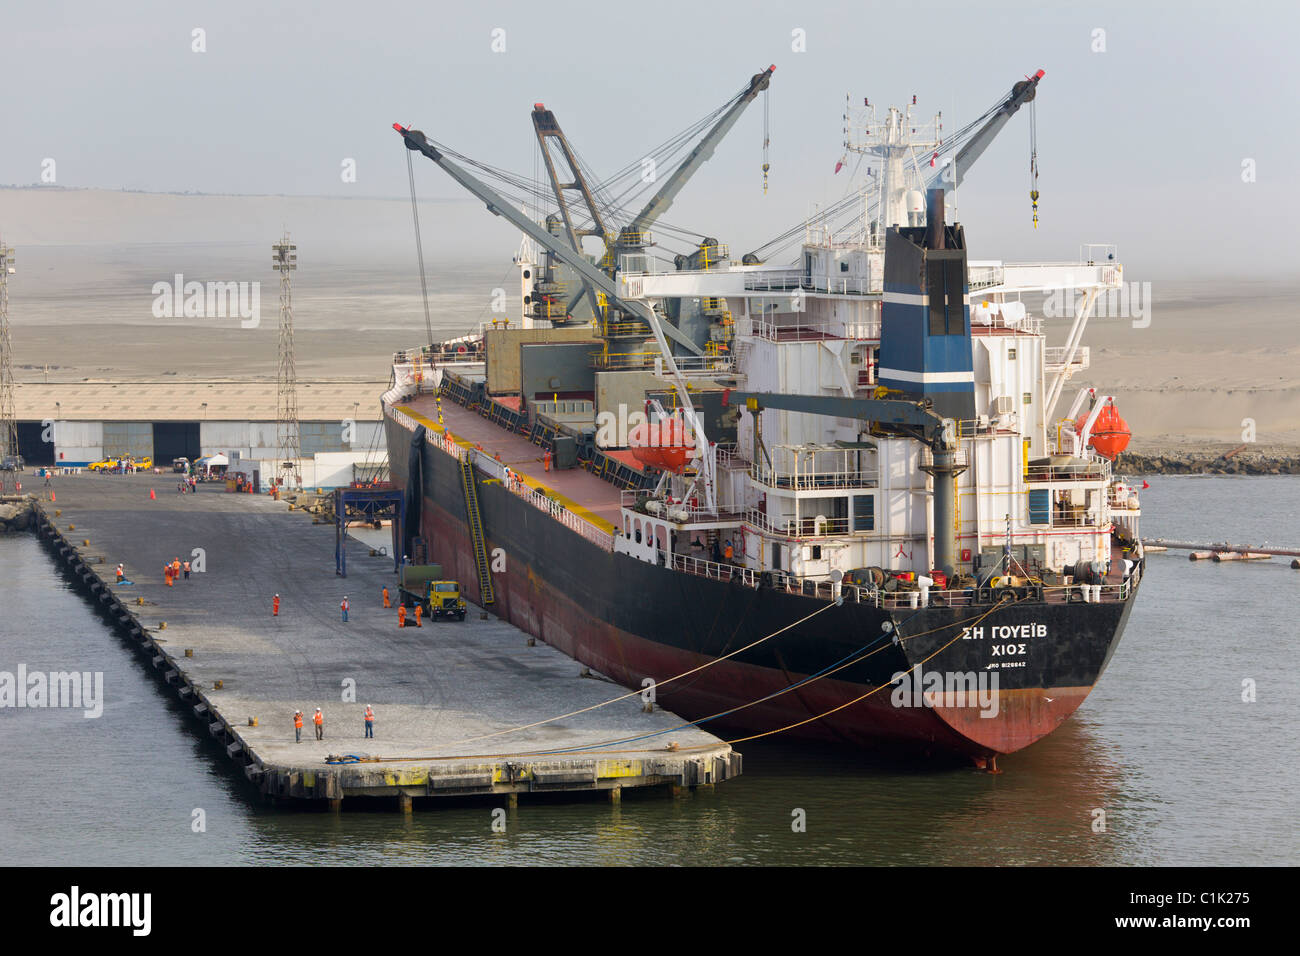 Cargo ship docked at the port of Salaverry, Trujillo, Peru Stock Photo